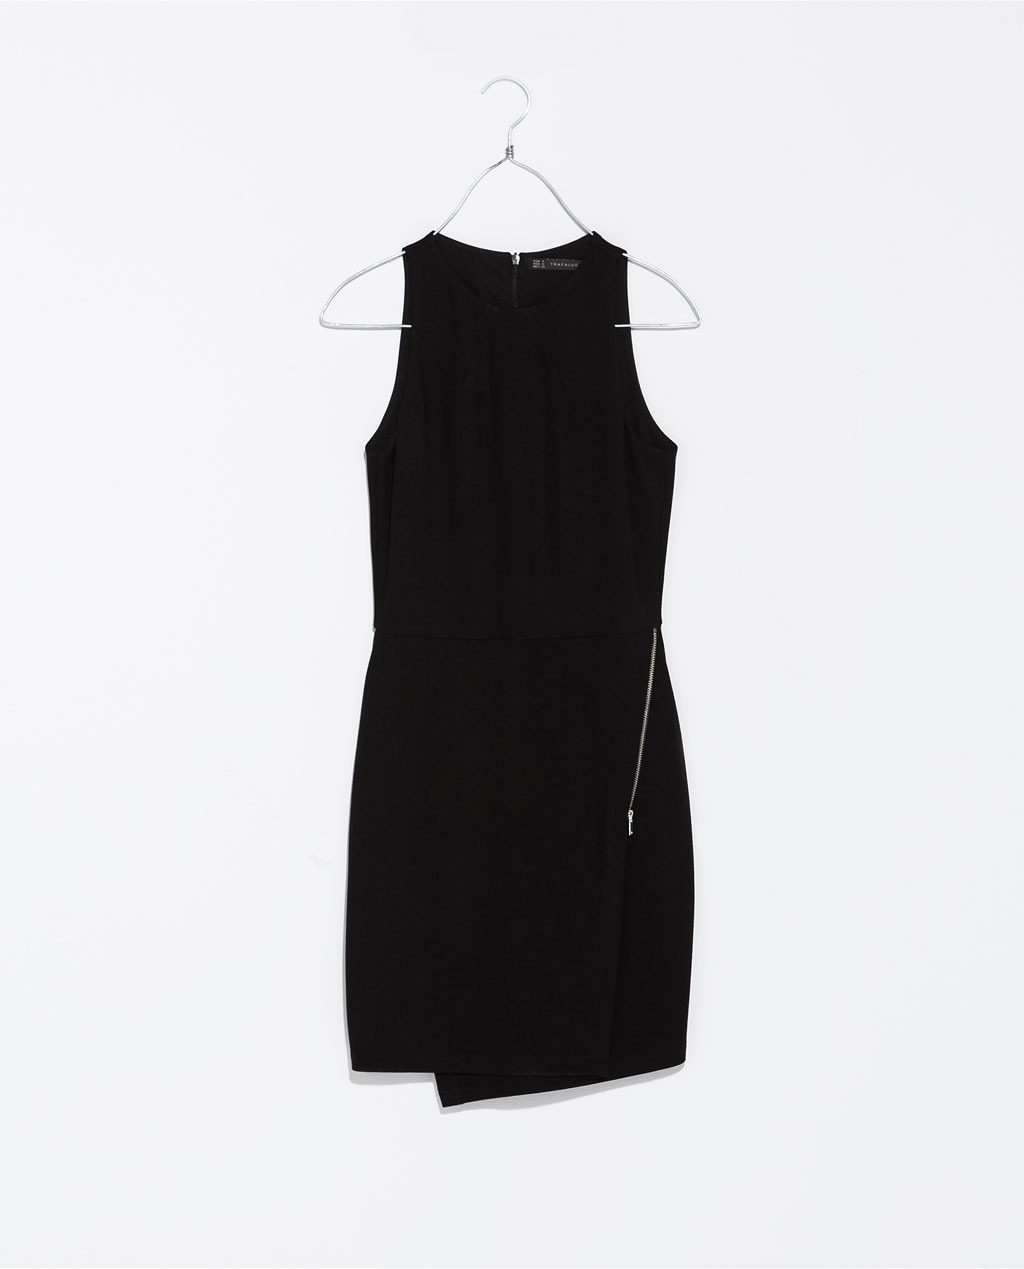 Zip Up Dress - style: shift; length: mid thigh; neckline: round neck; fit: tailored/fitted; pattern: plain; sleeve style: sleeveless; predominant colour: black; occasions: casual, evening, occasion, creative work; fibres: viscose/rayon - stretch; sleeve length: sleeveless; texture group: woven light midweight; embellishment: zips; season: s/s 2014